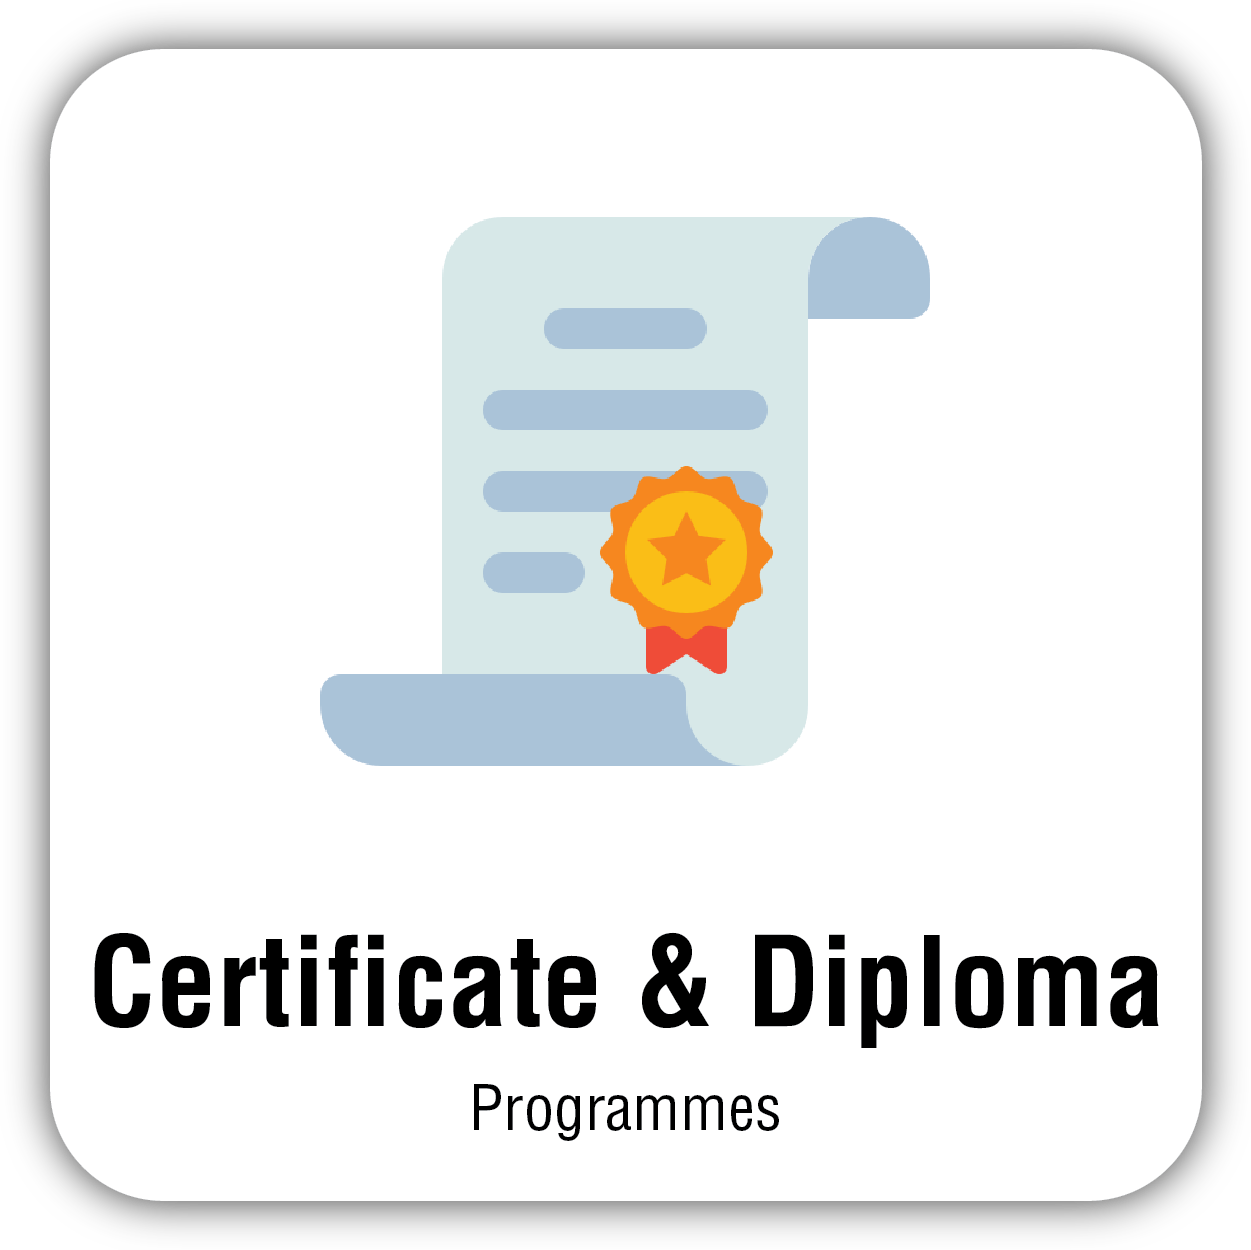 button for Certificate & Diploma